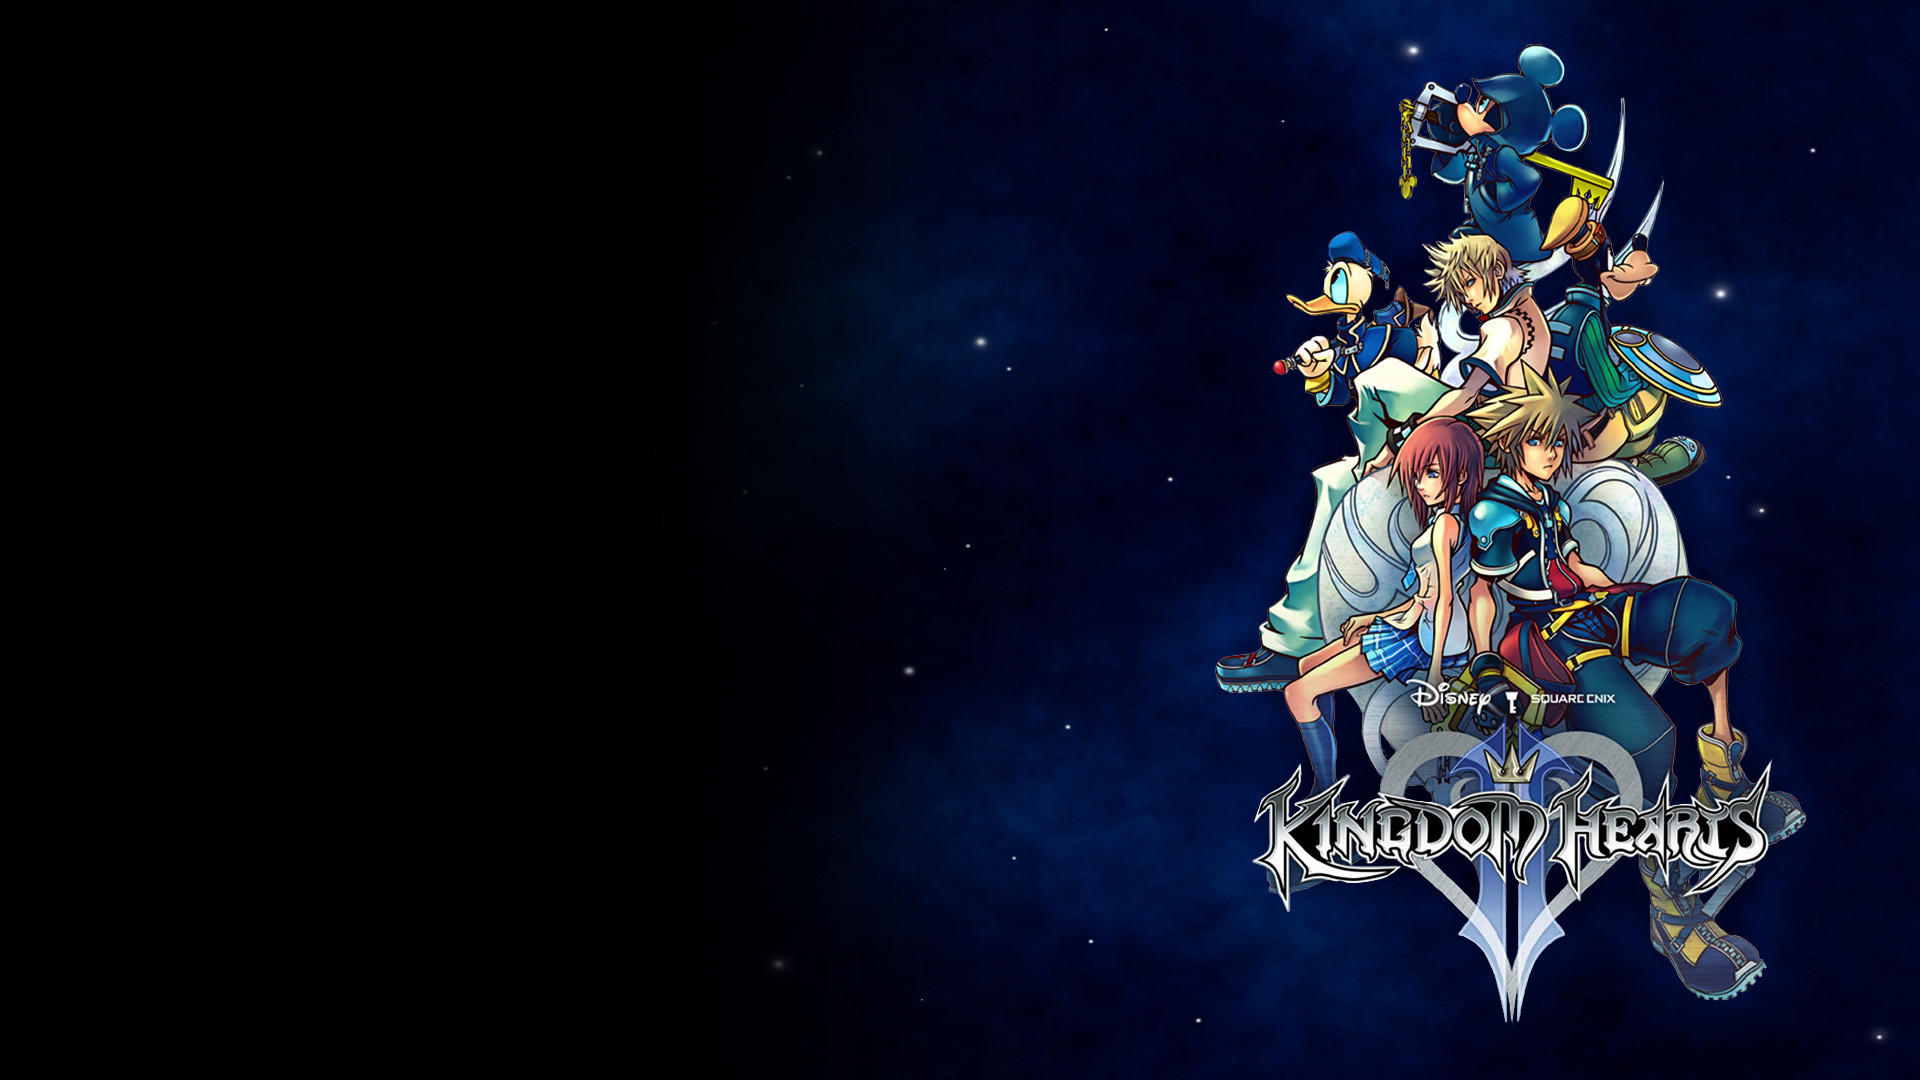 Kingdom Hearts Wallpaper (78+ images)